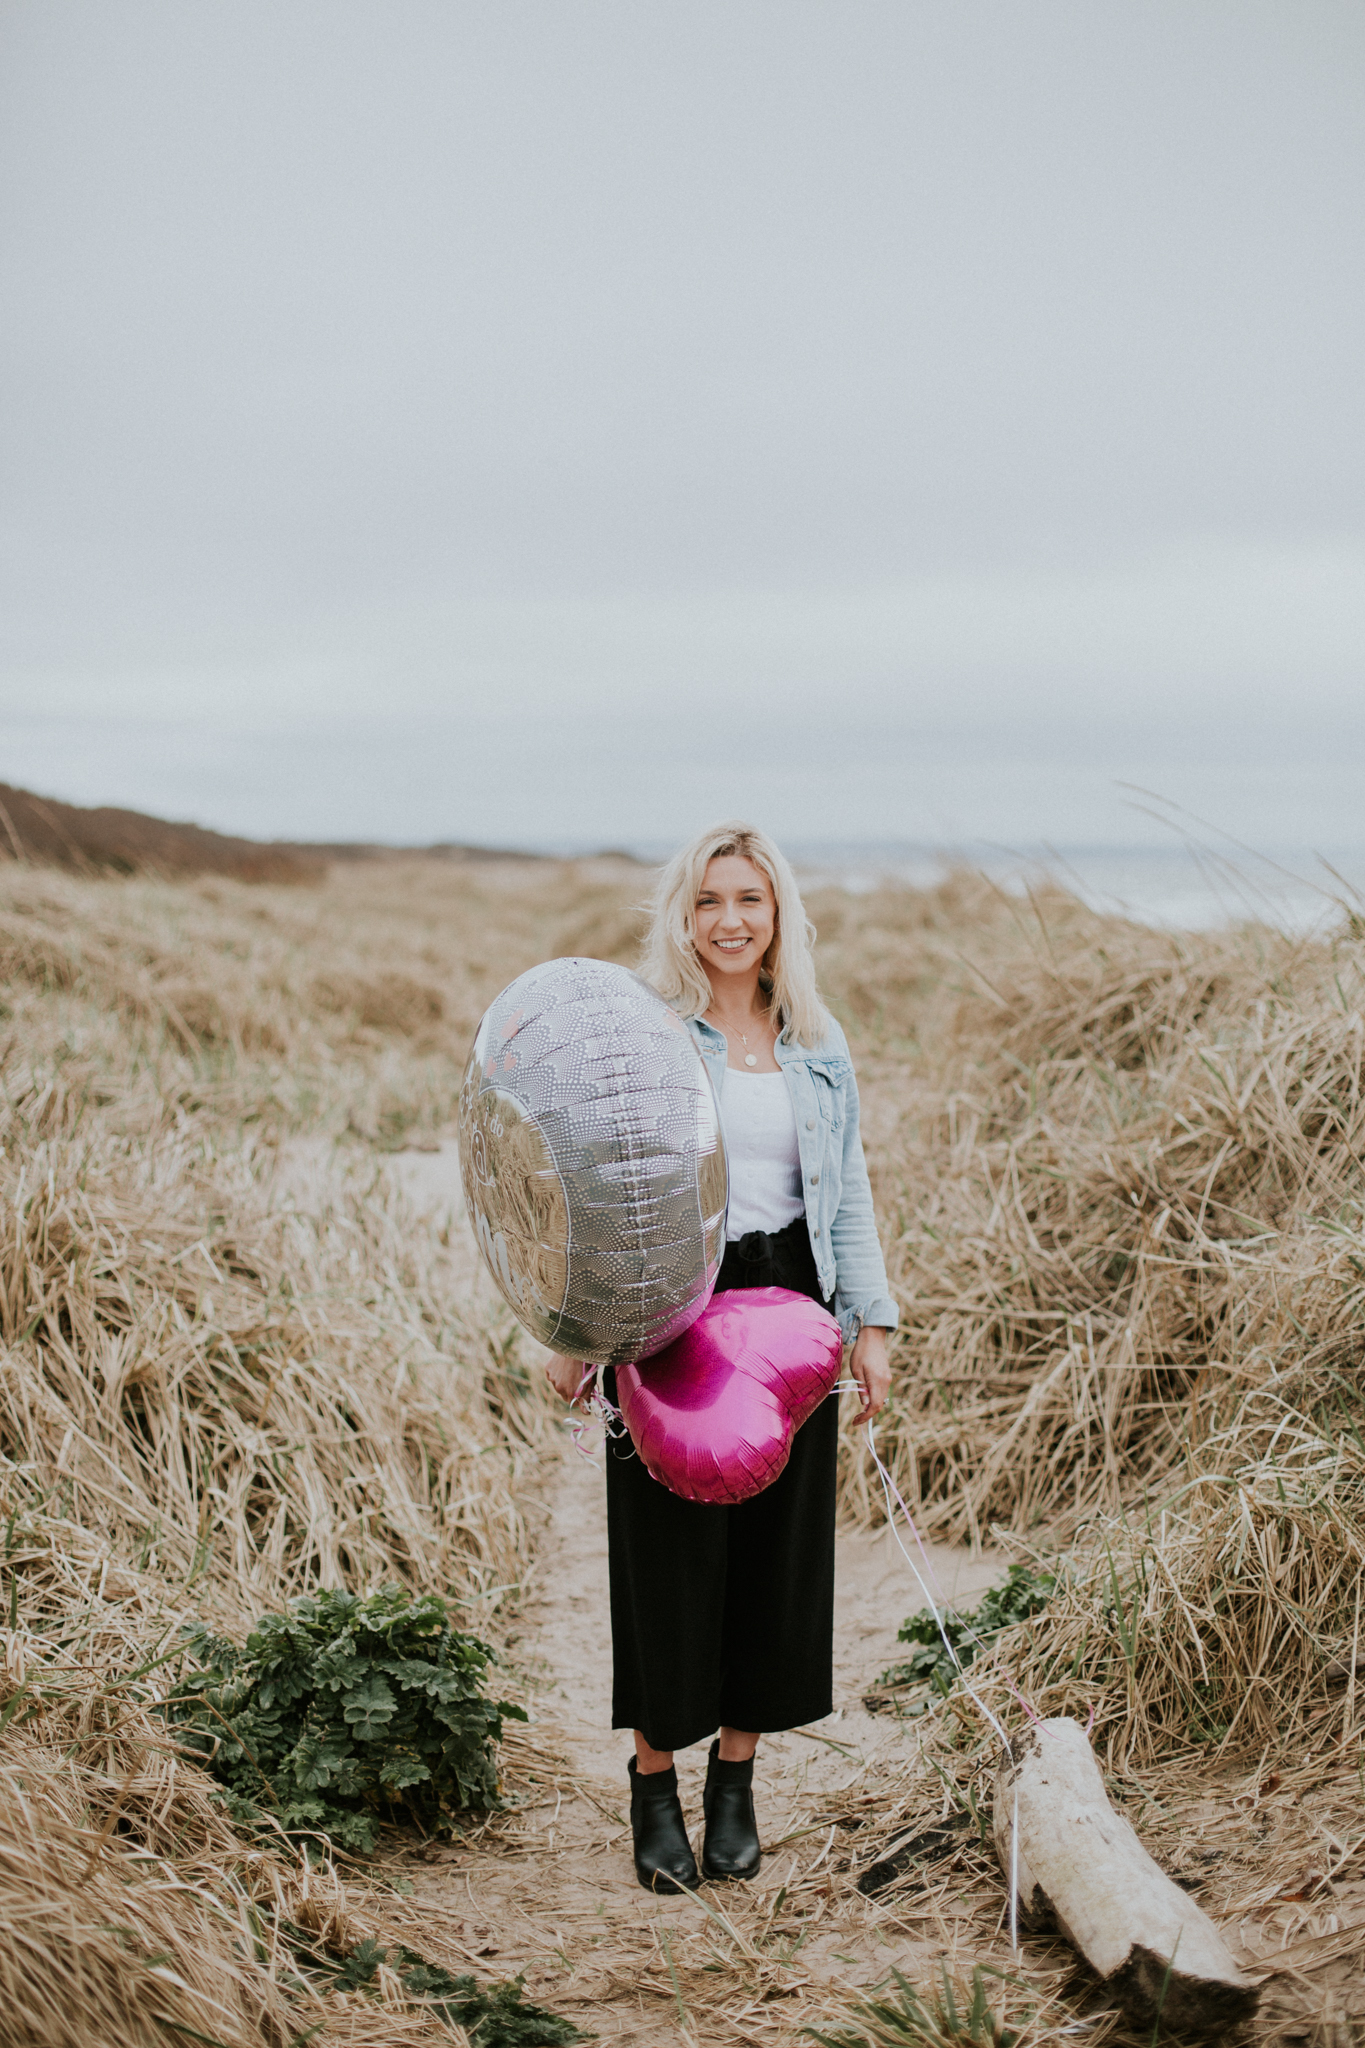 The bride is standing on the beach in Troon and holding the balloons